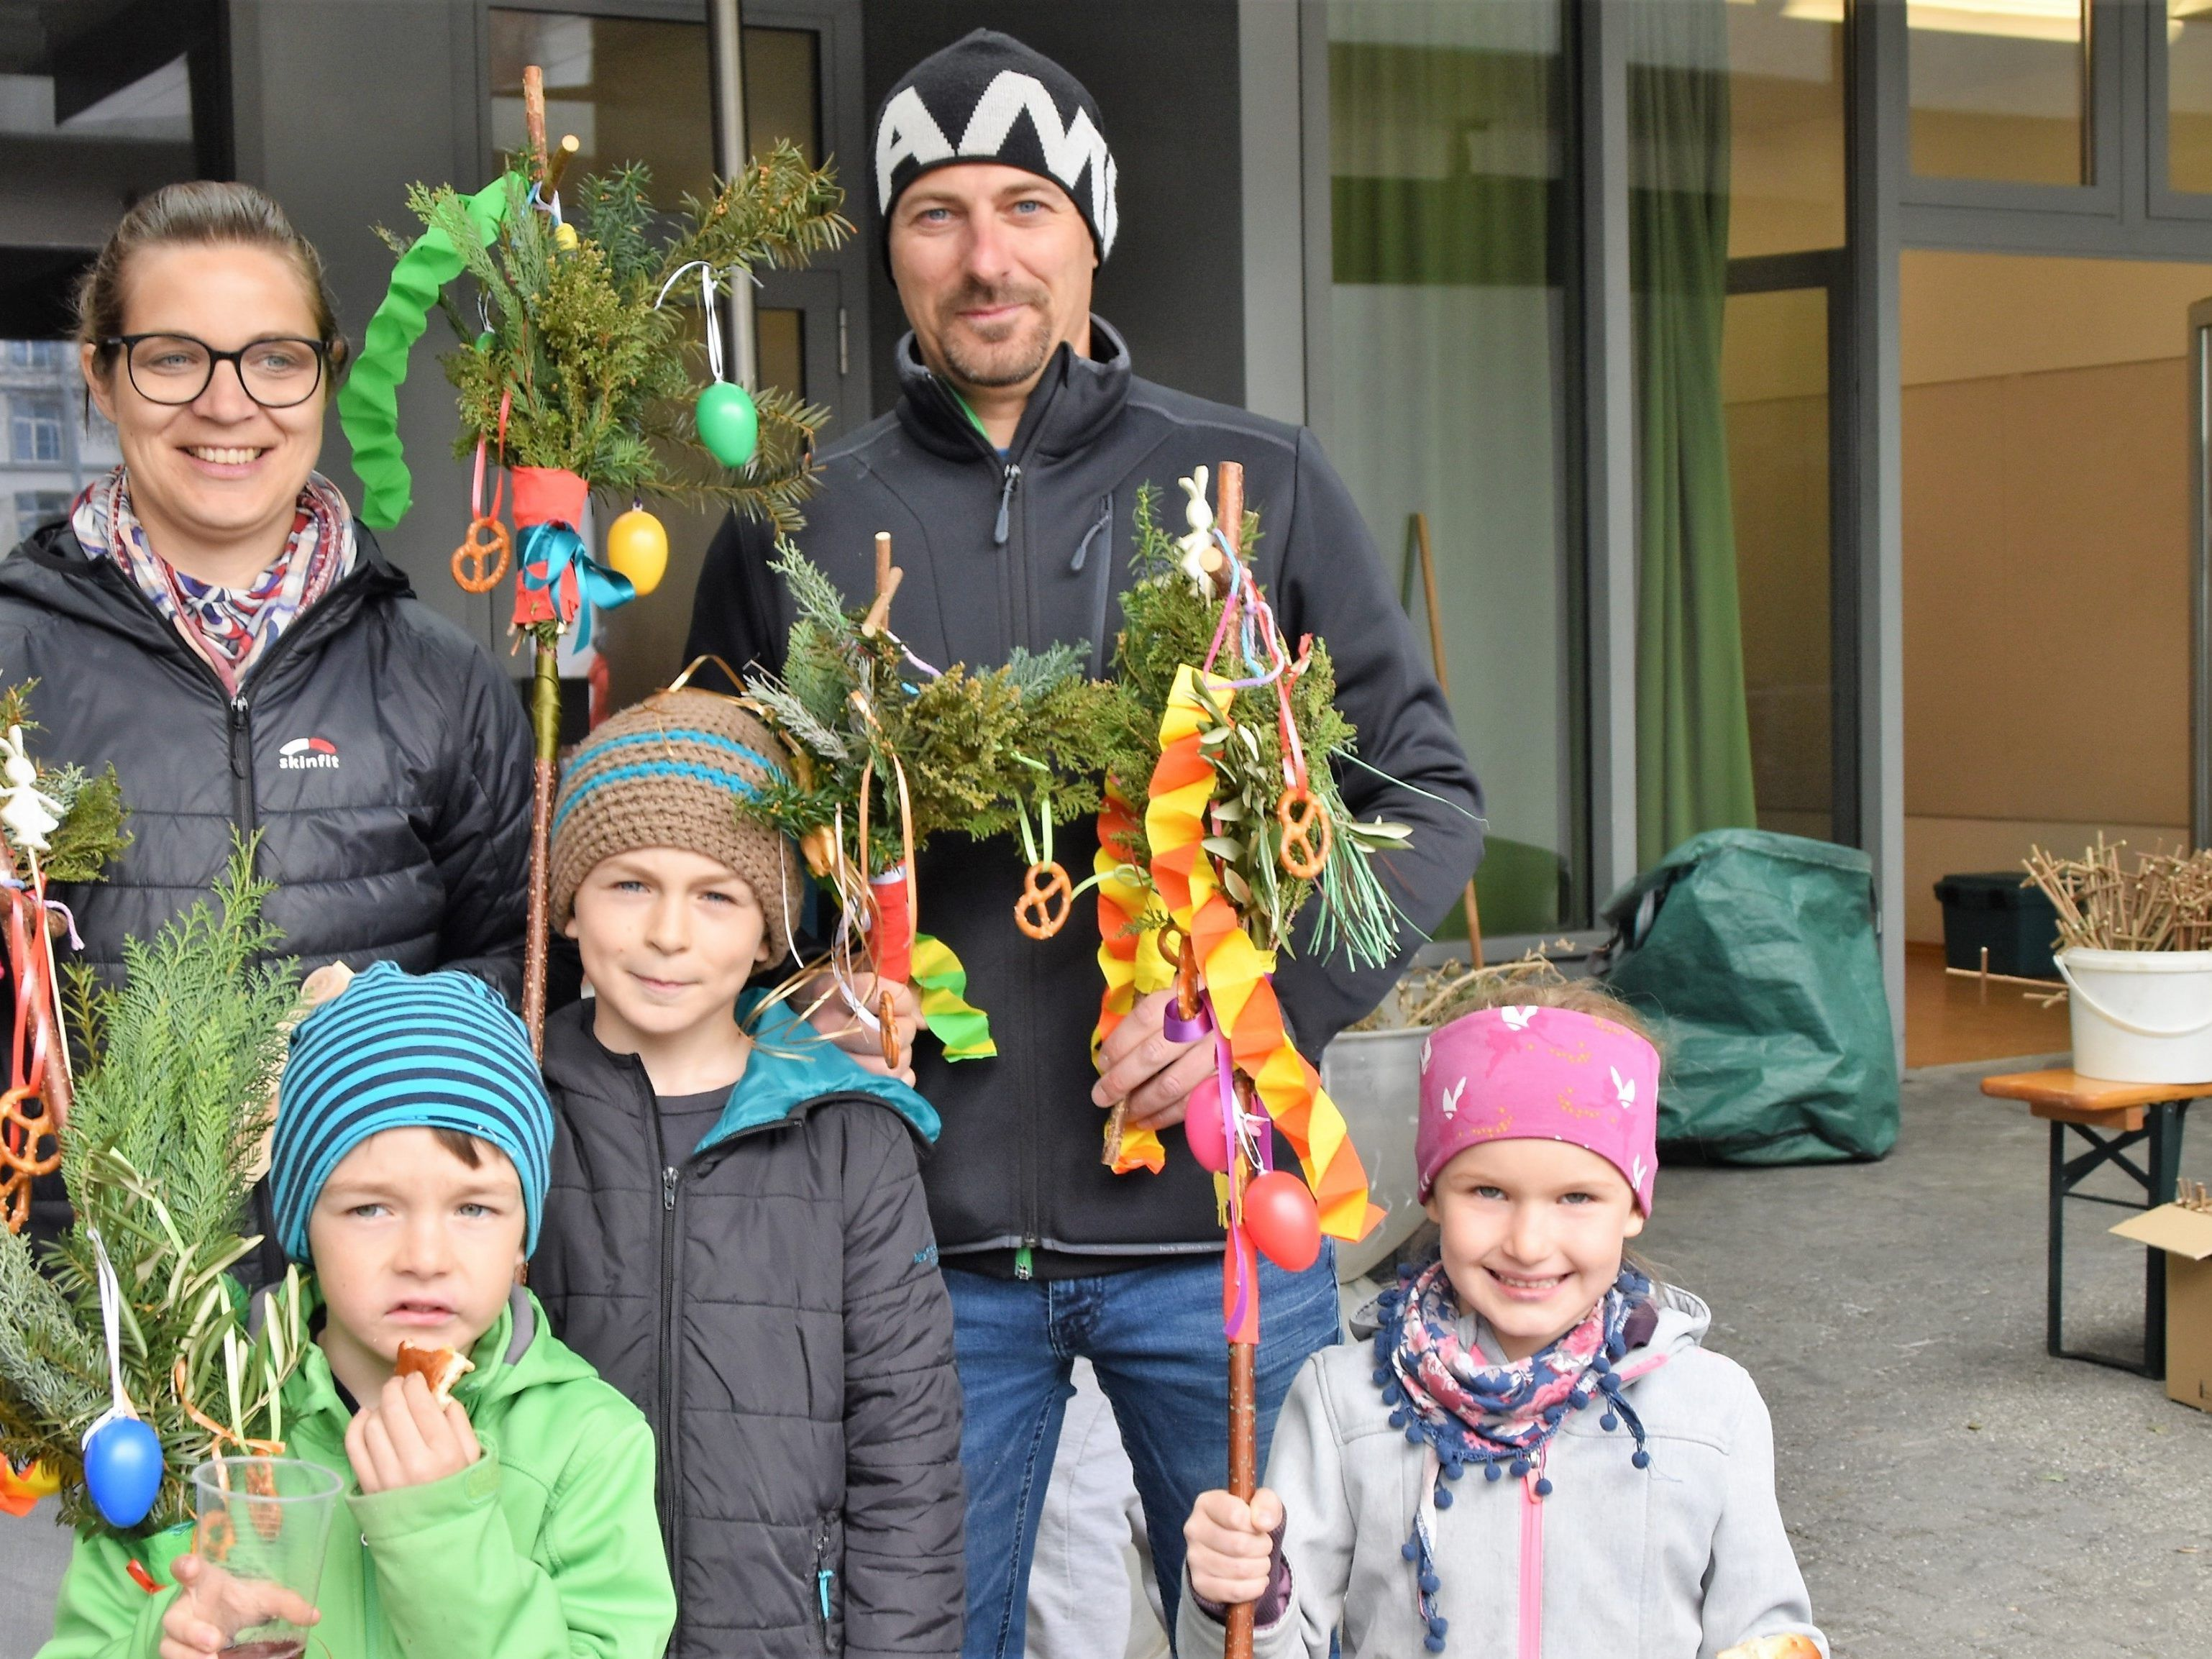 Gelebte Tradition in Götzis